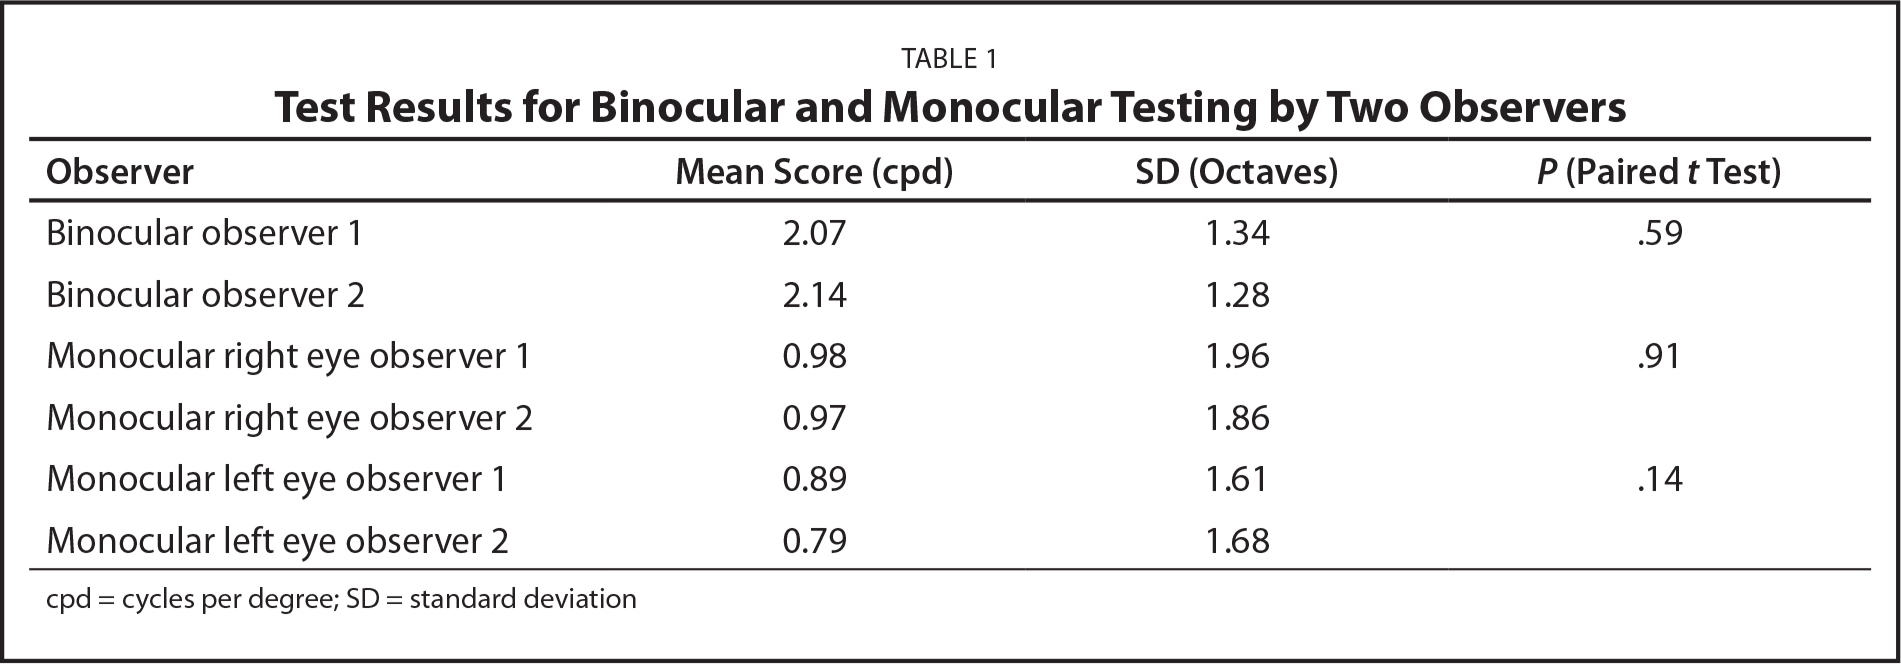 Test Results for Binocular and Monocular Testing by Two Observers